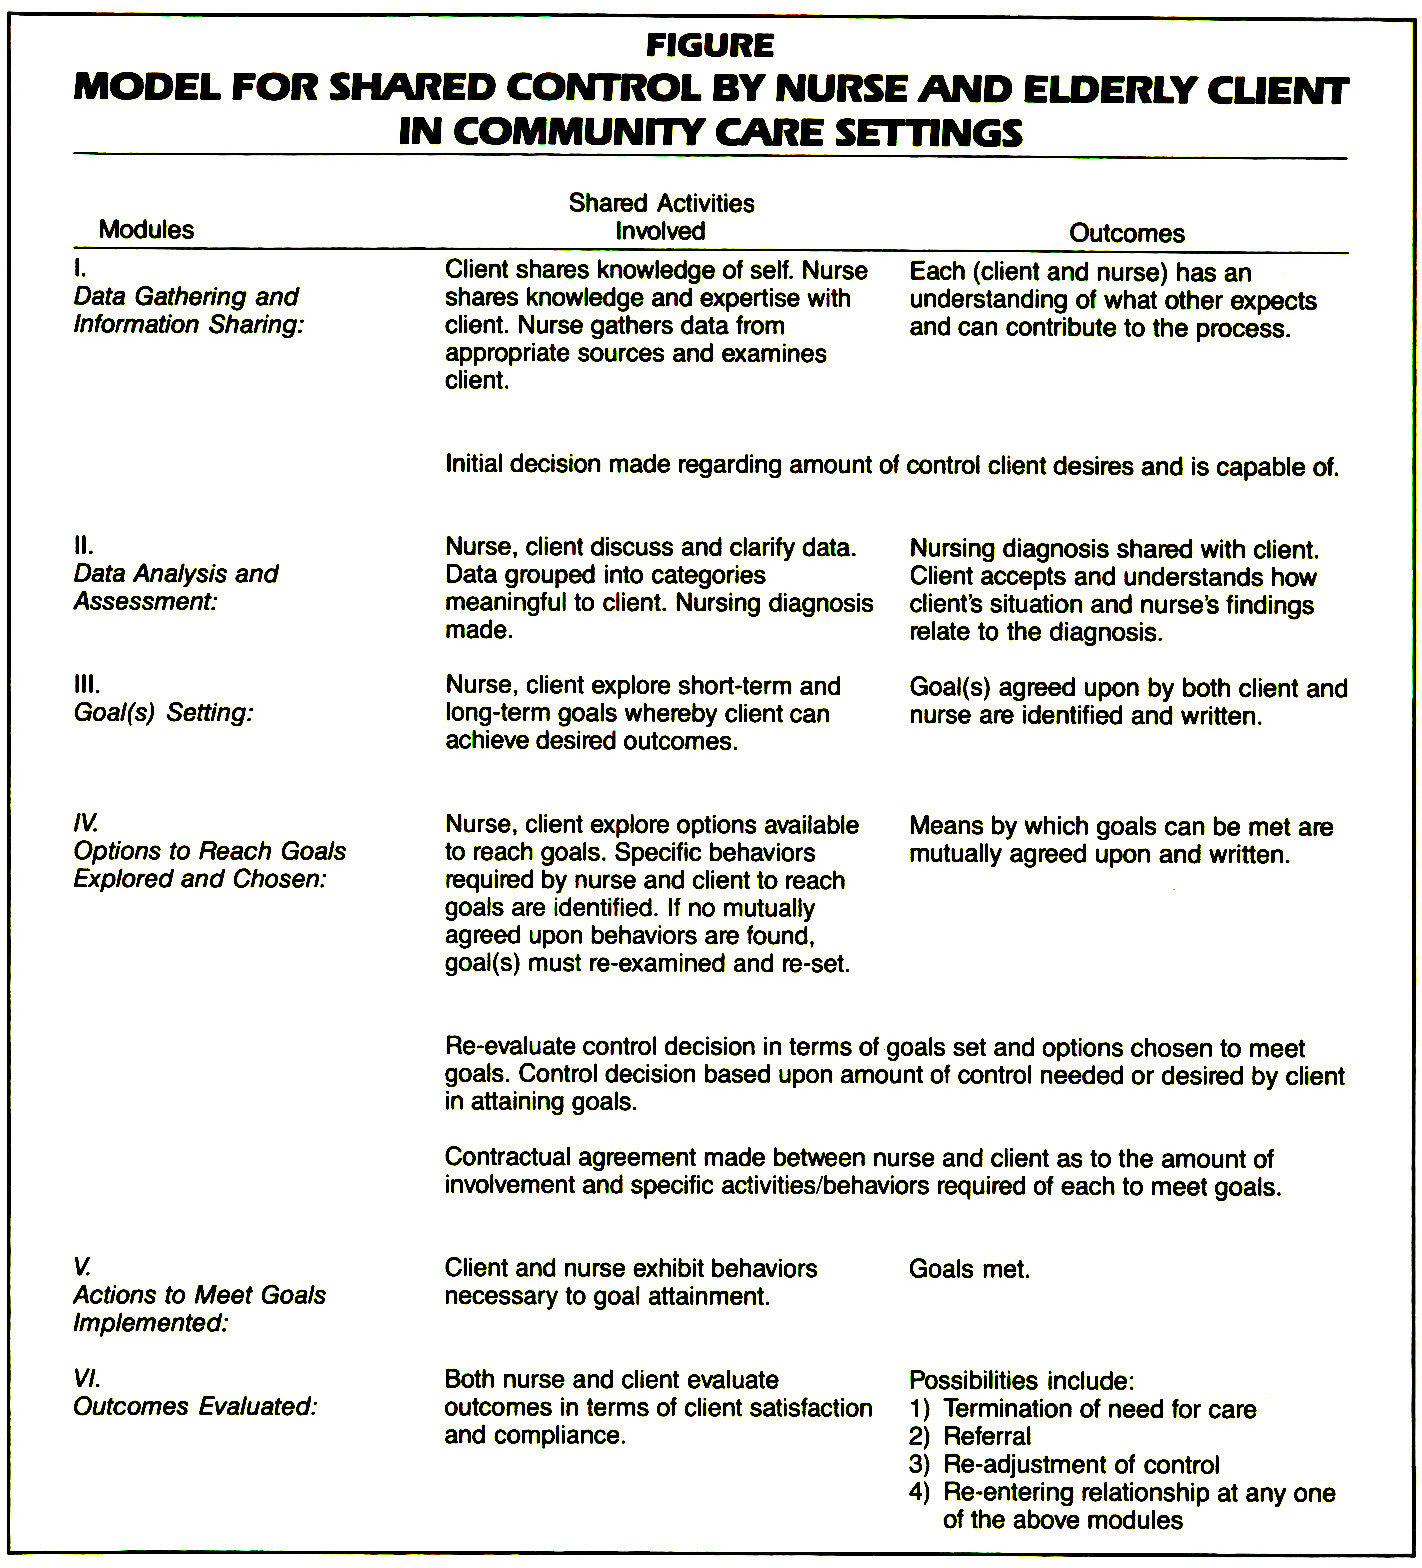 FIGUREMODEL FOR SHARED CONTROL BY NURSE AND ELDERLY CLIENT IN COMMUNITY CARE SETTINGS